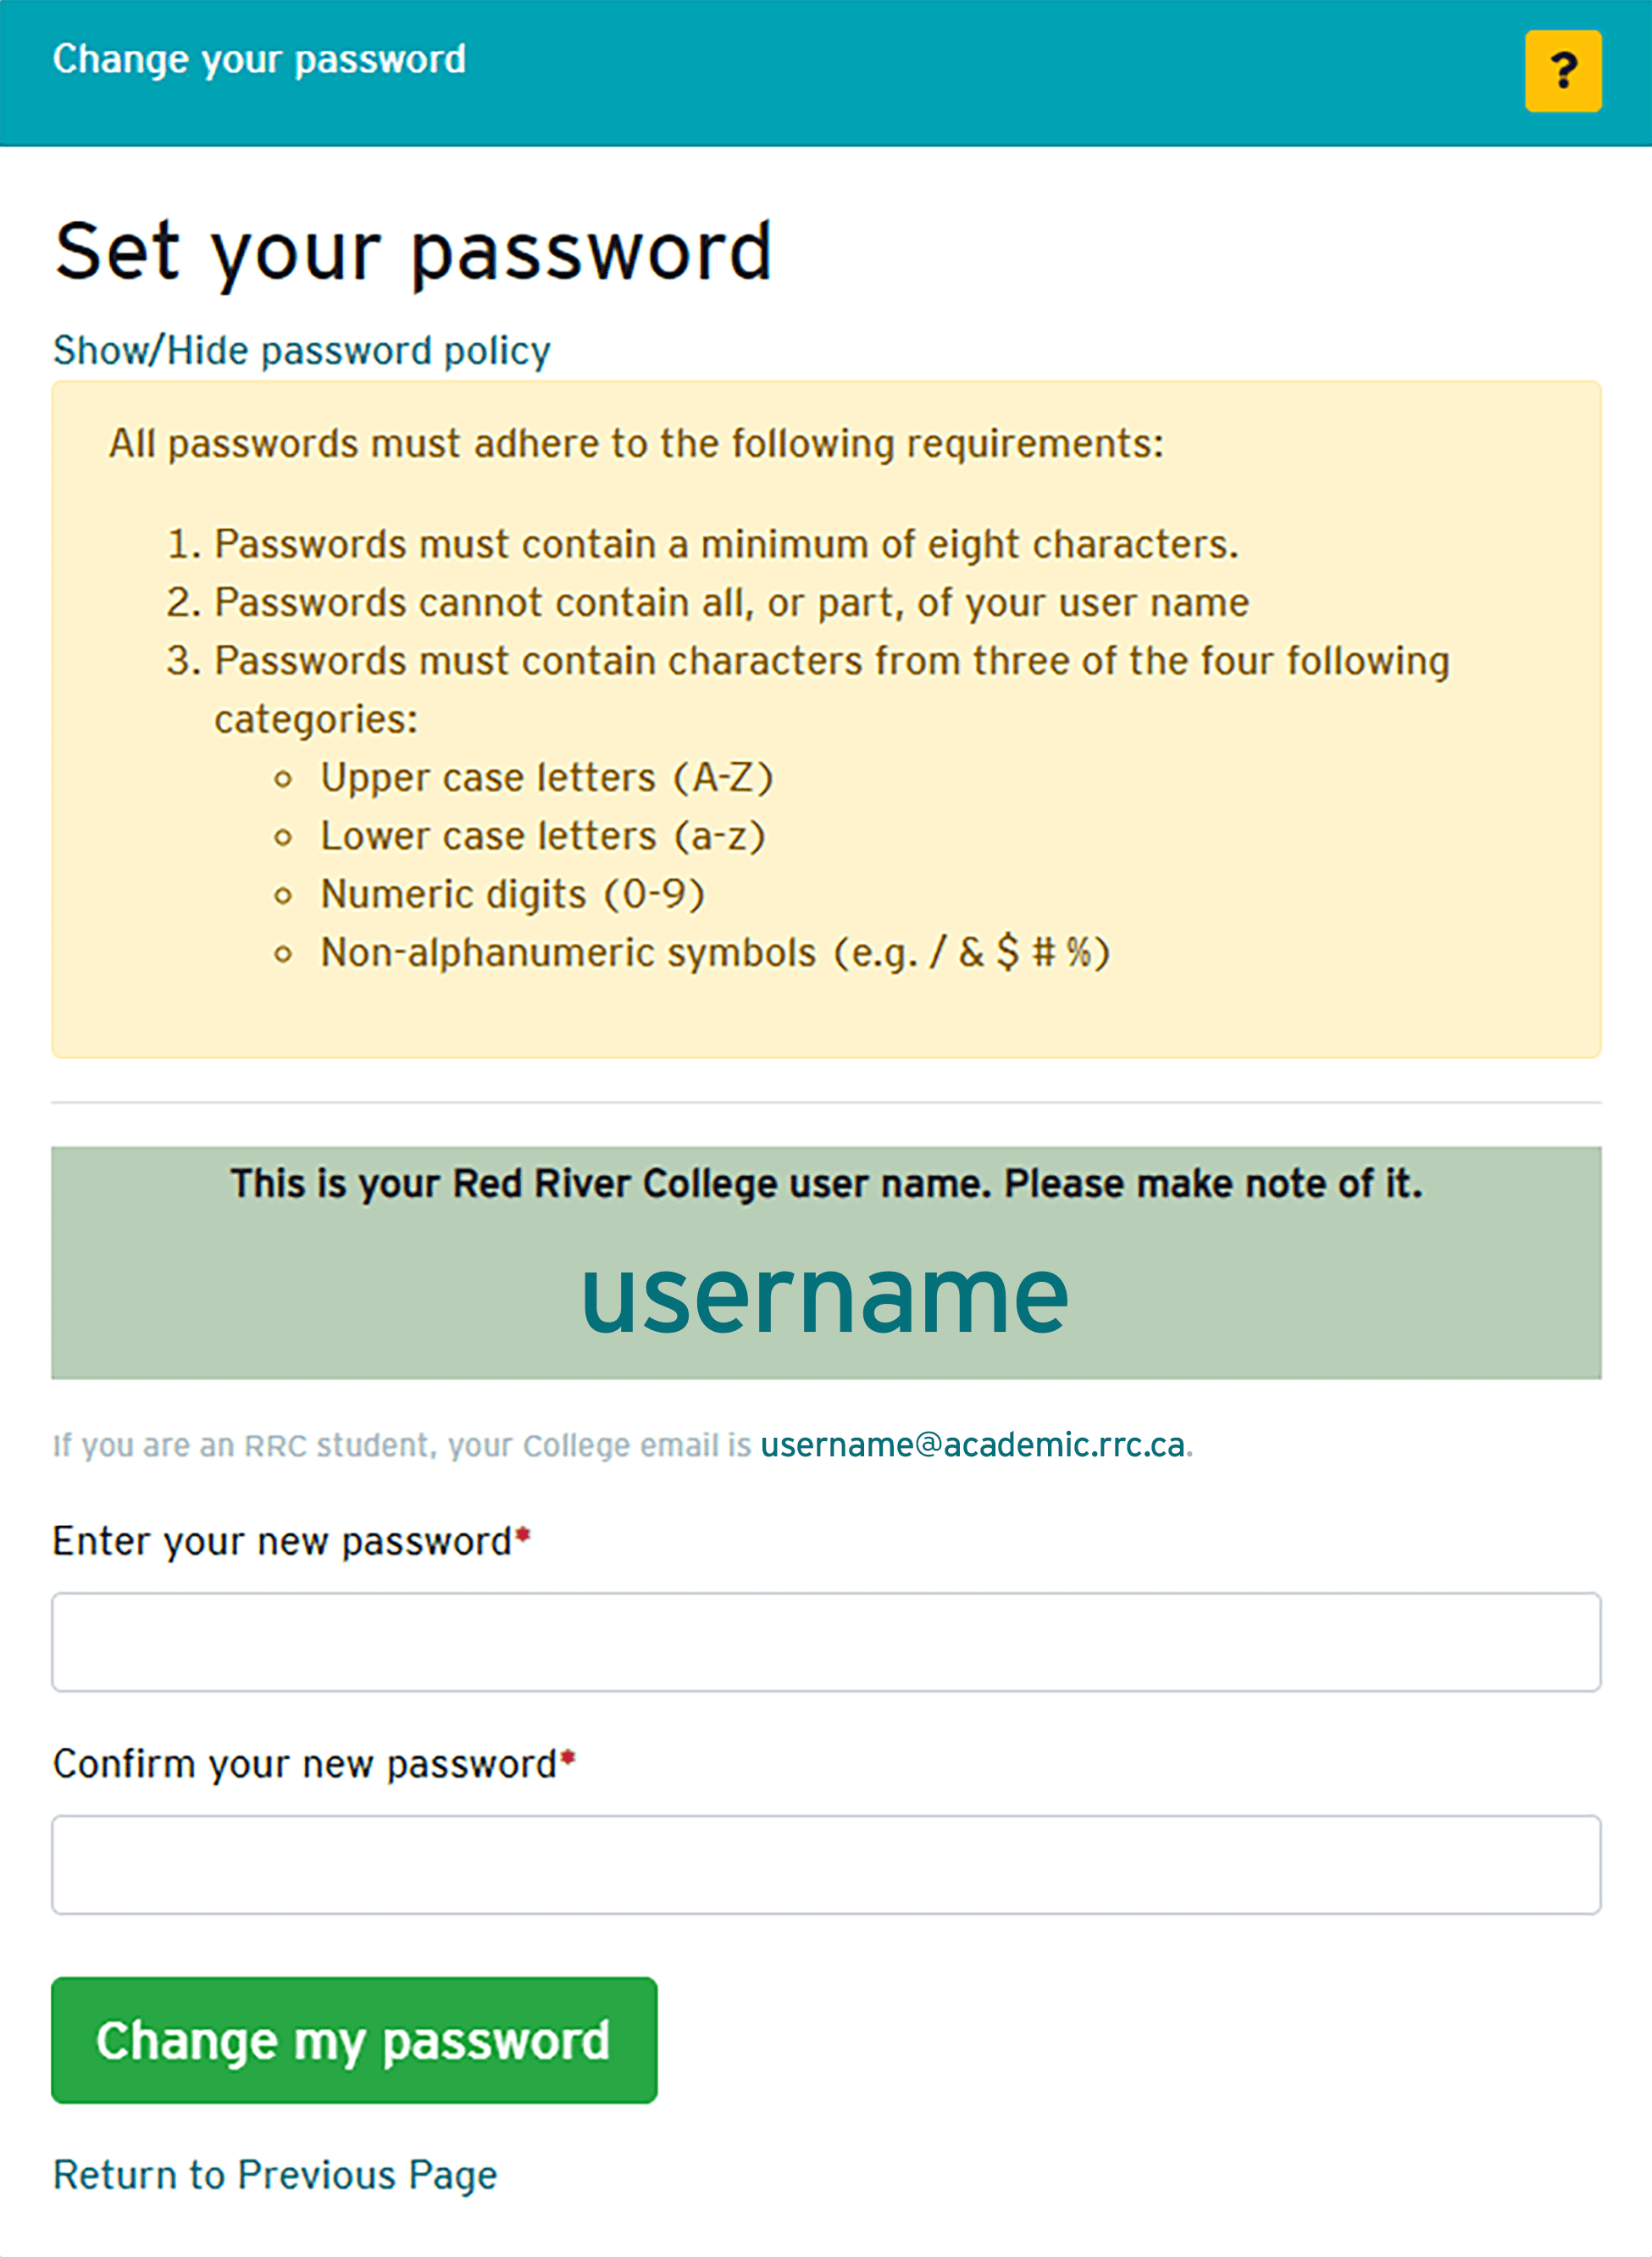 change password policy & user name window